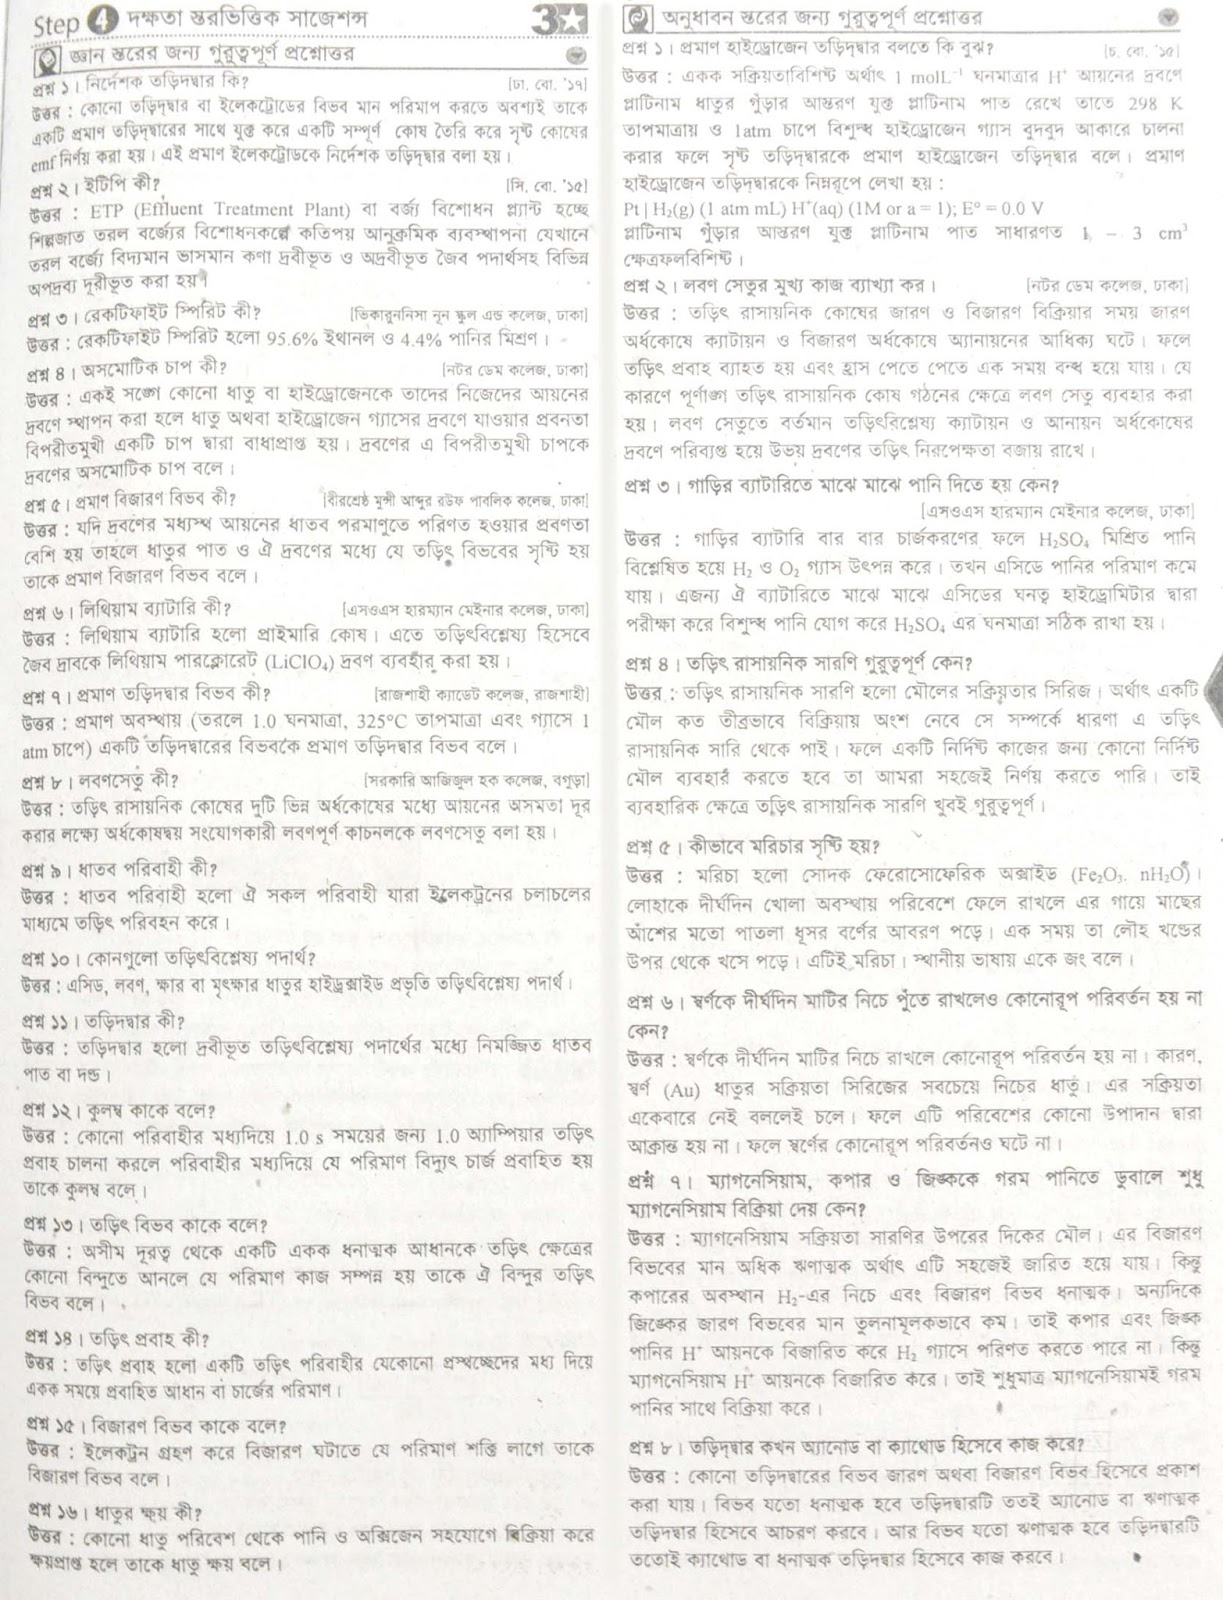 hsc Chemistry 2nd Paper suggestion, exam question paper, model question, mcq question, question pattern, preparation for dhaka board, all boards